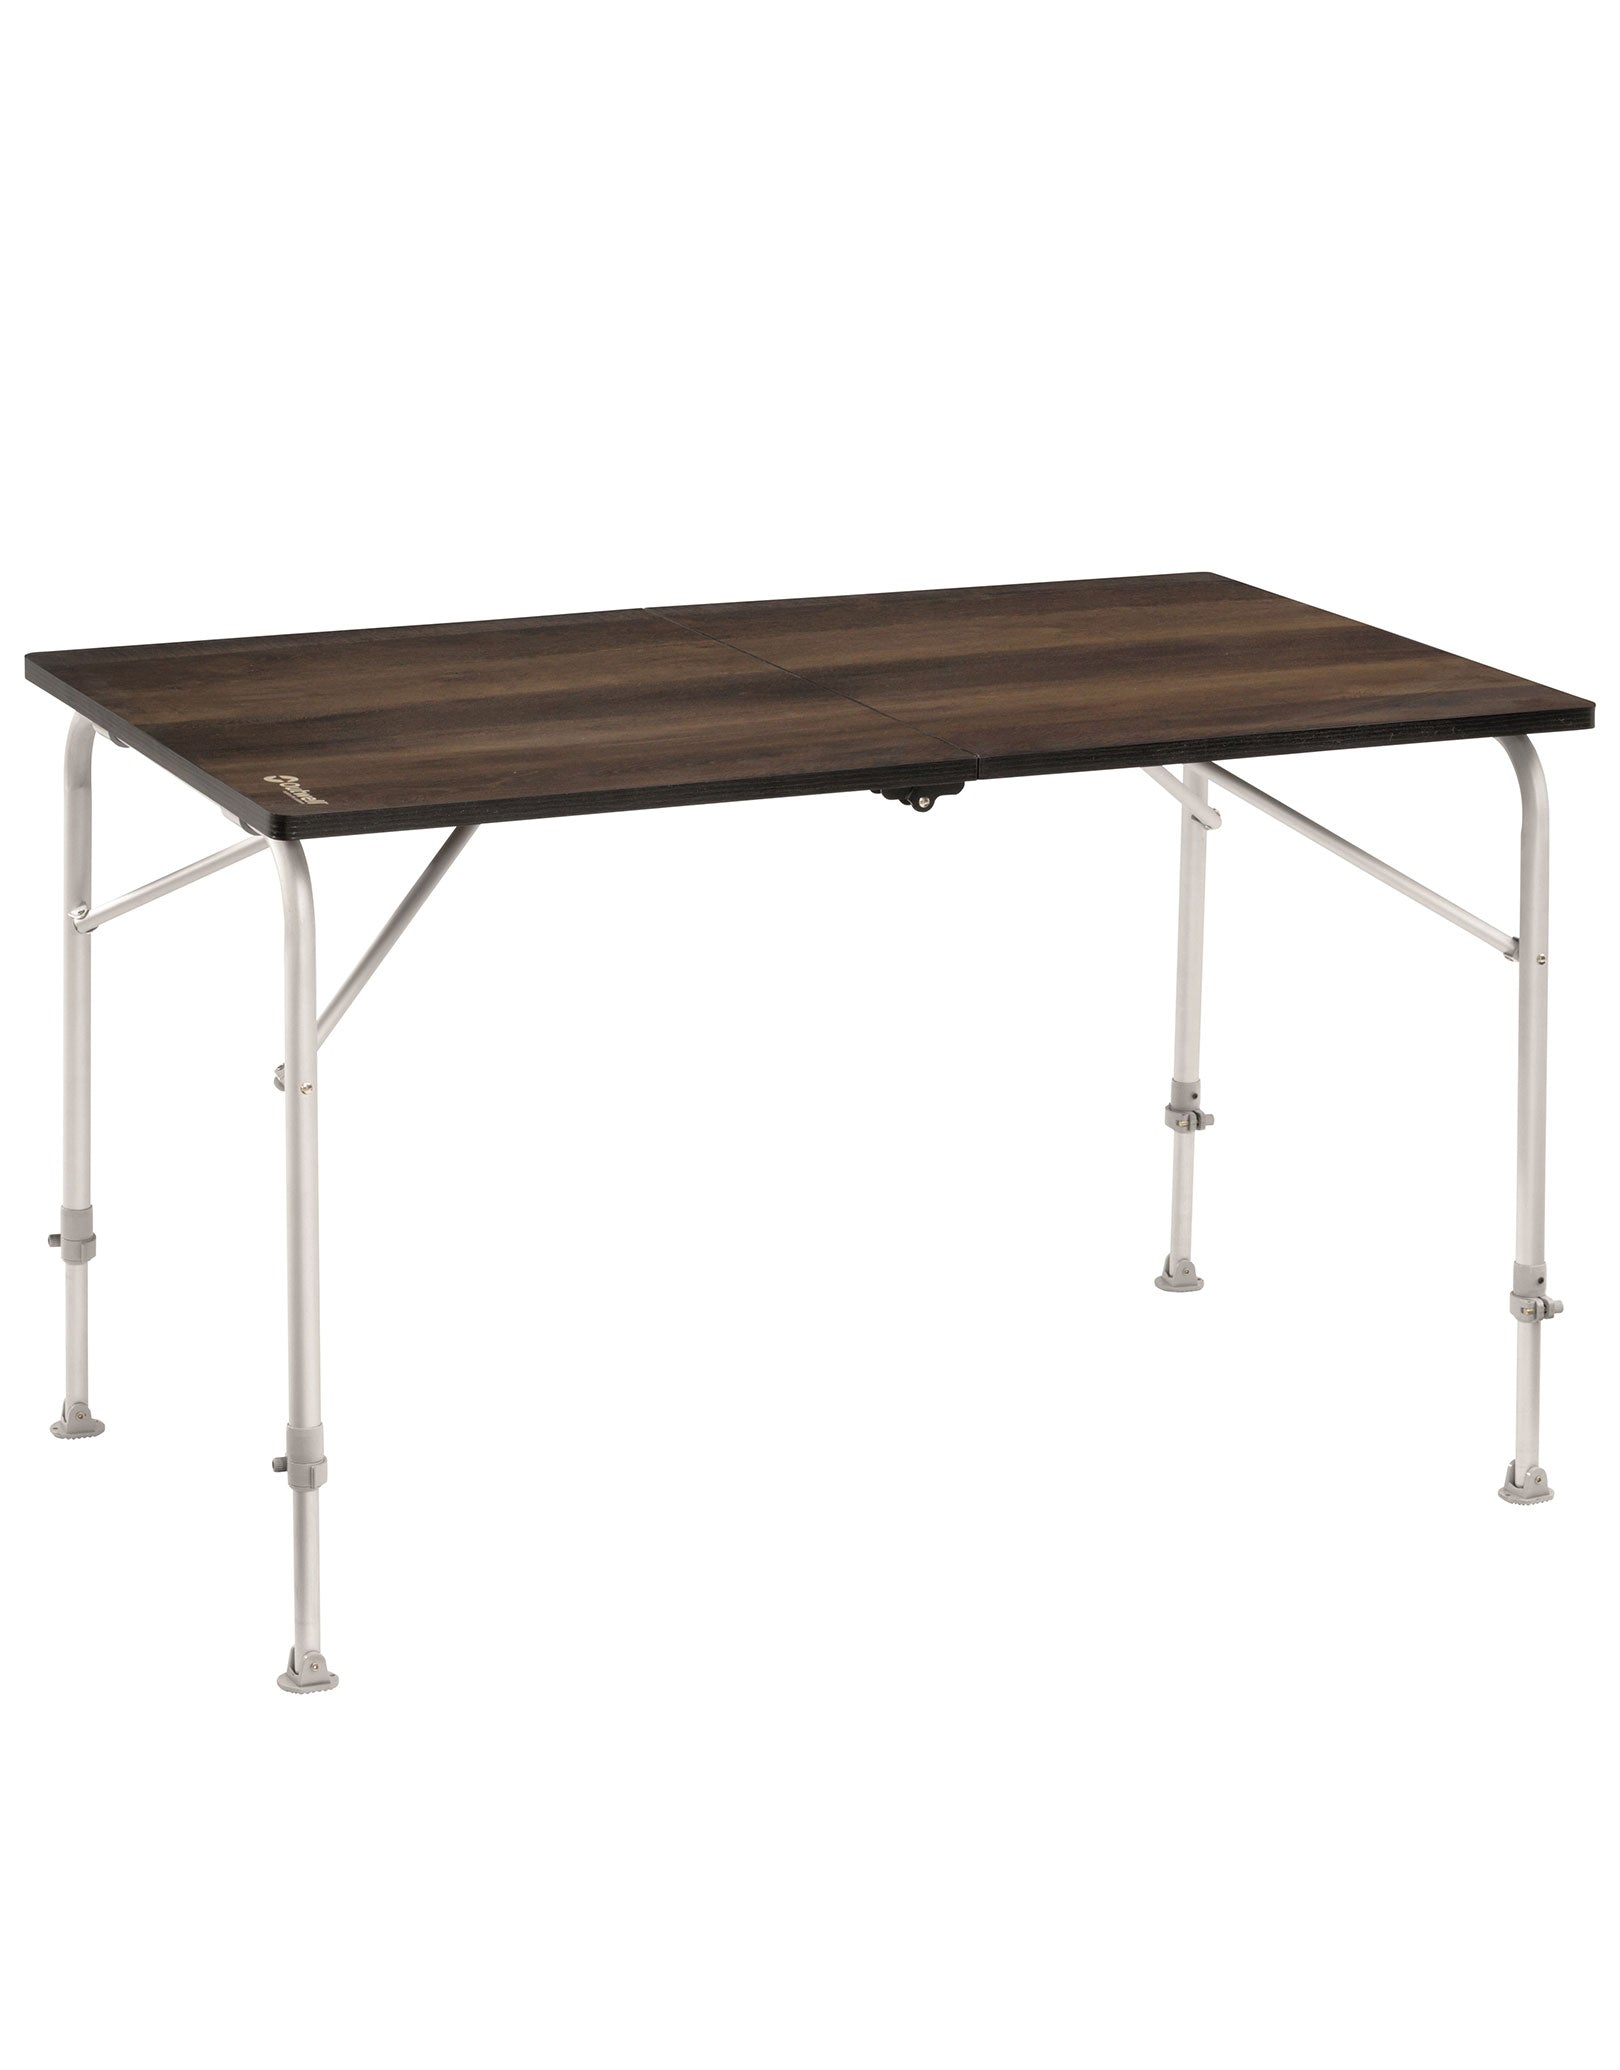 Image of Outwell Berland Folding Table - Large